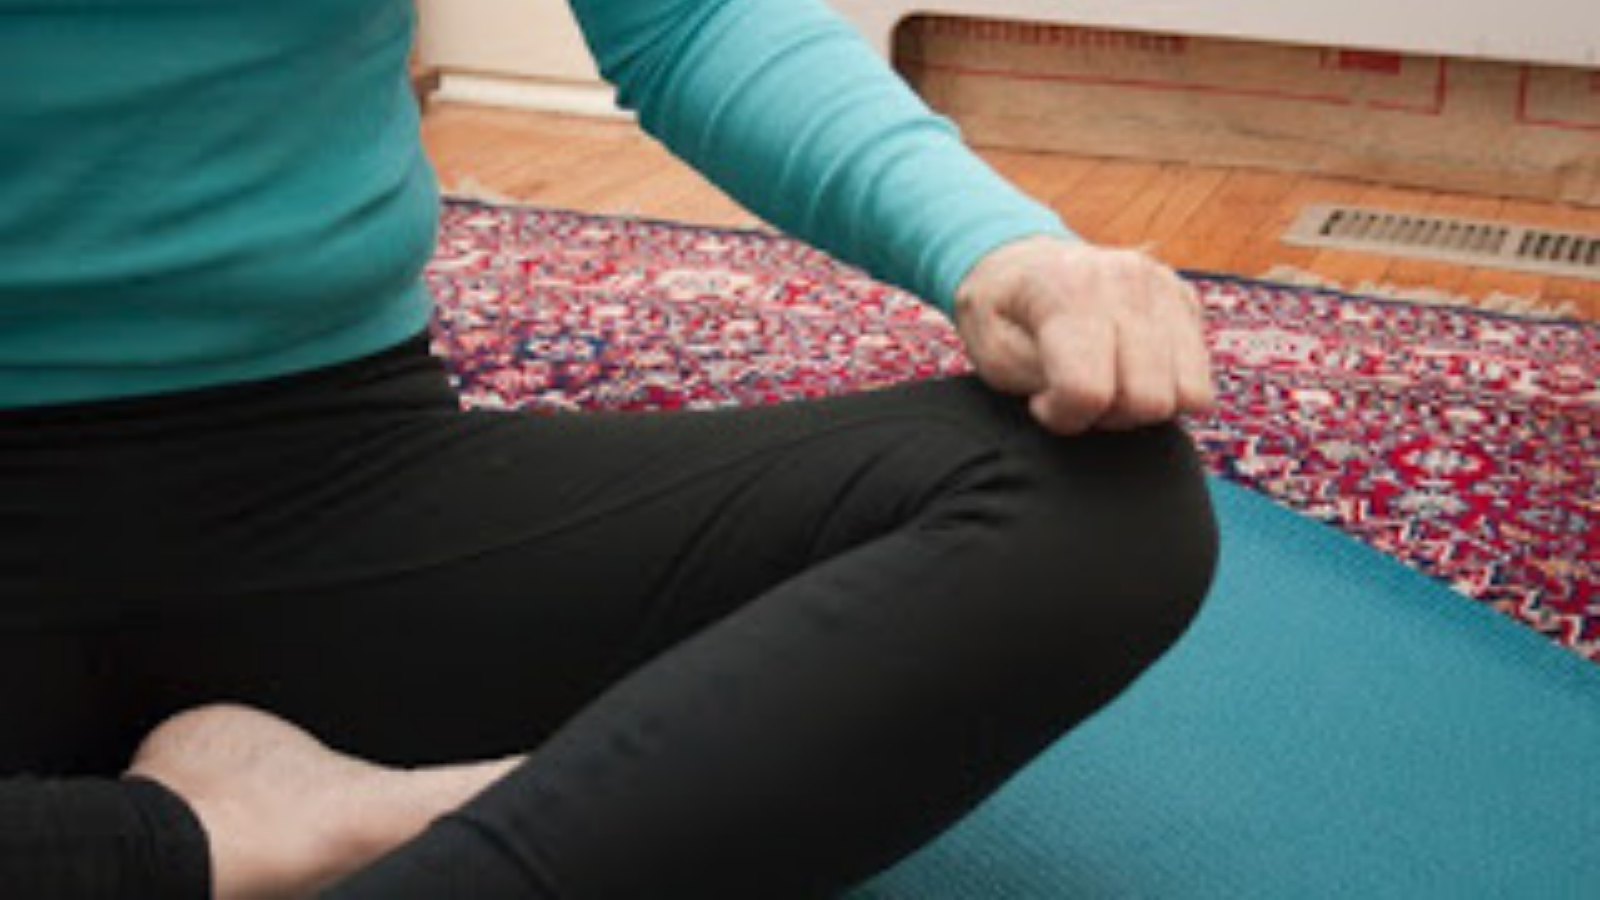 The benefits of practicing adhi mudra, an energy practice, to find stability and grounding in the base of the body